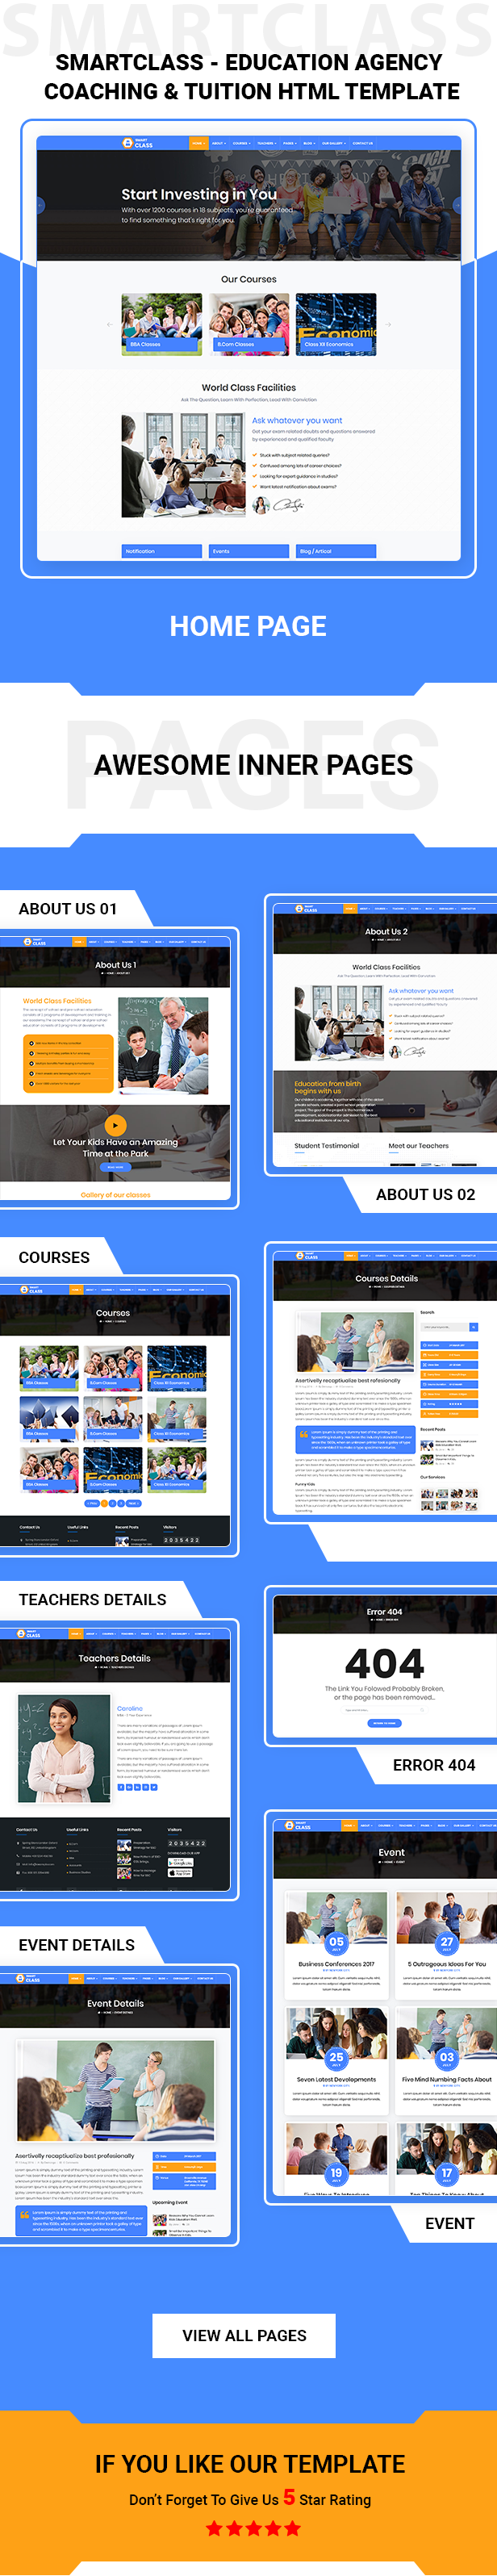 SmartClass | Education Agency Coaching & Tuition HTML Template - 3